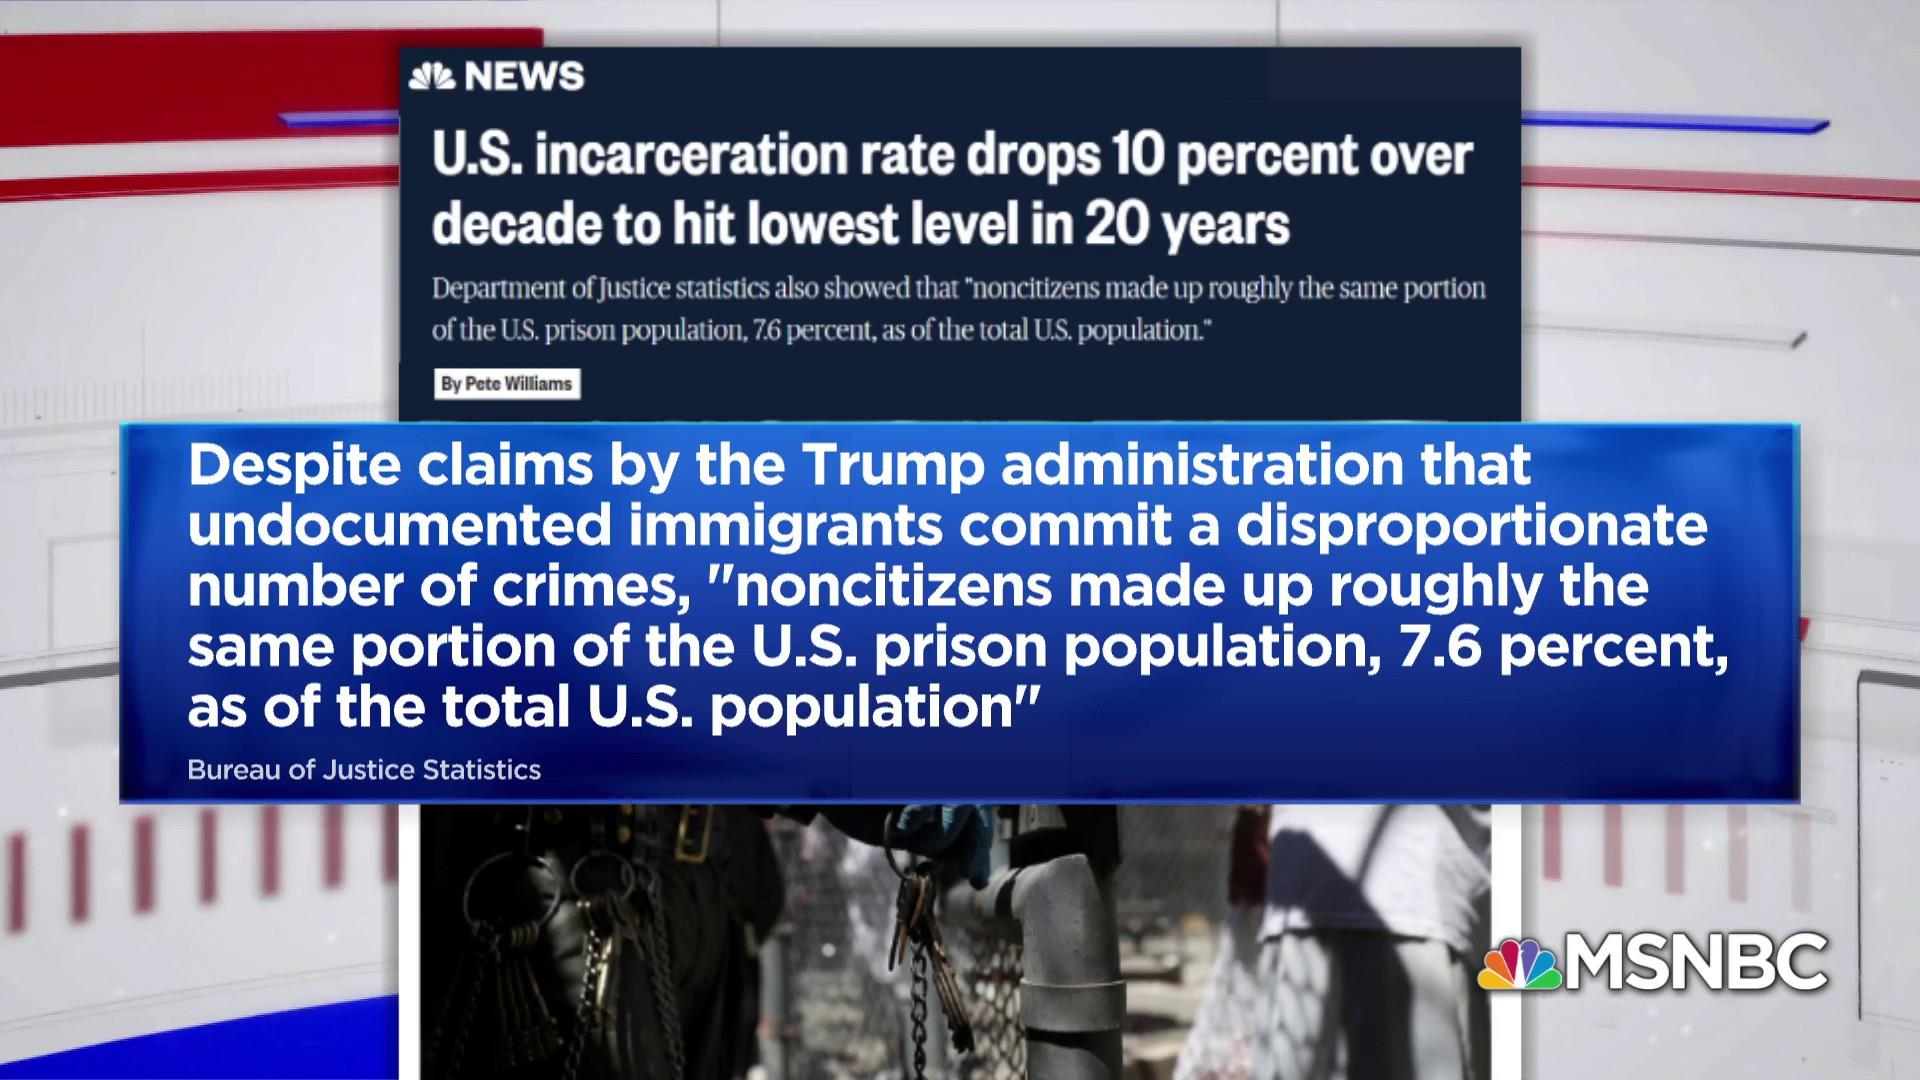 U.S. incarceration rate is the lowest it's been in 20 years